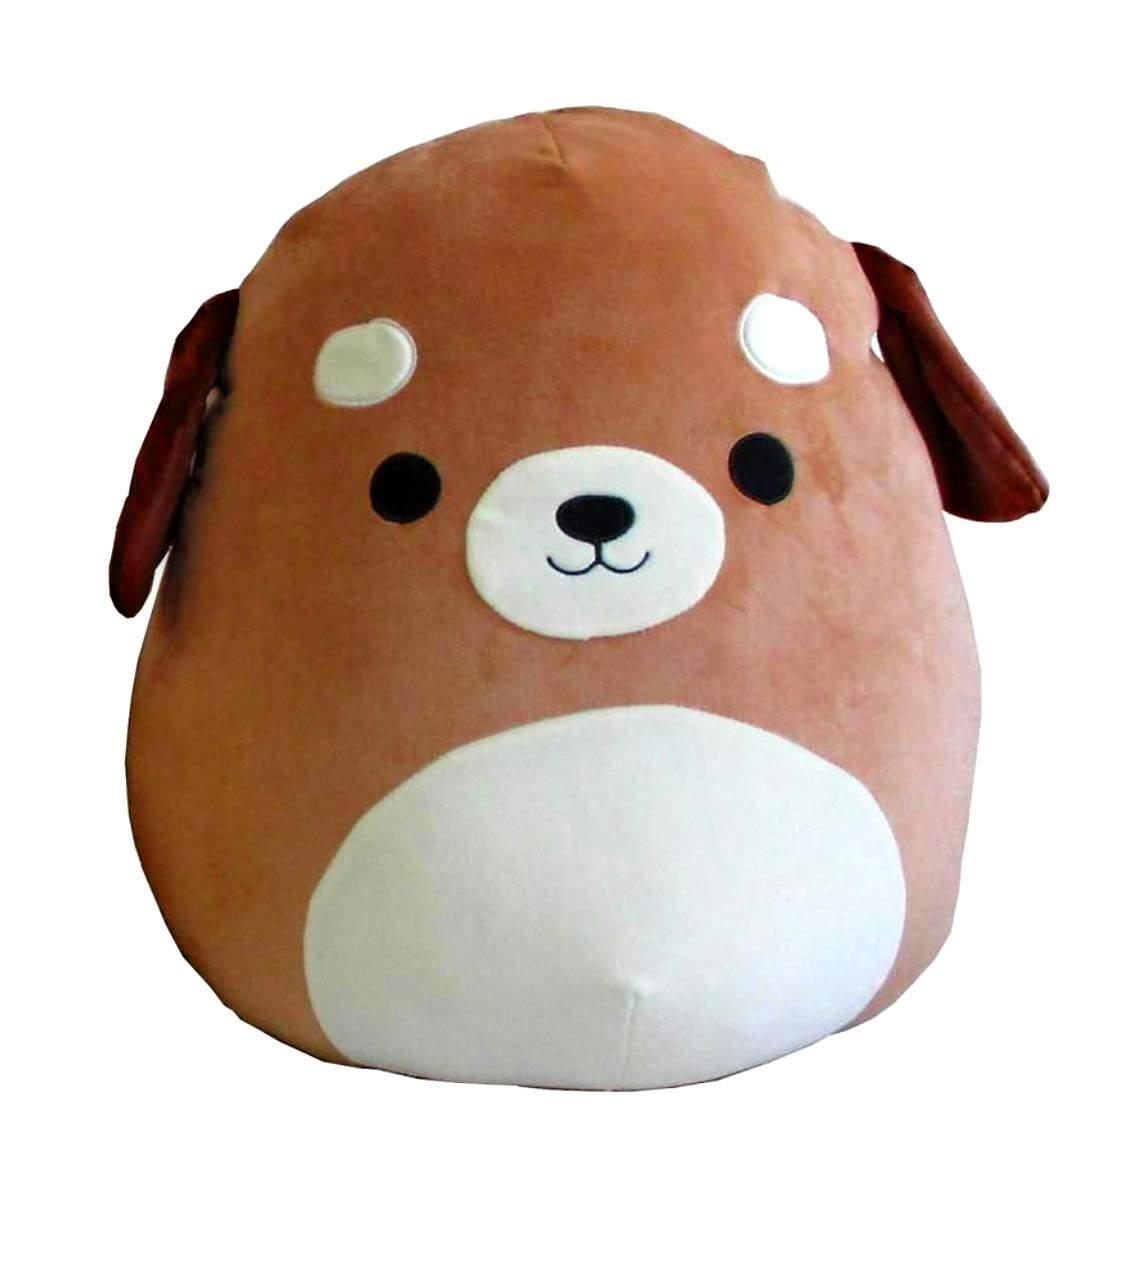 Squishmallow Large Pillow Plush Toy, 16 inches (Dog